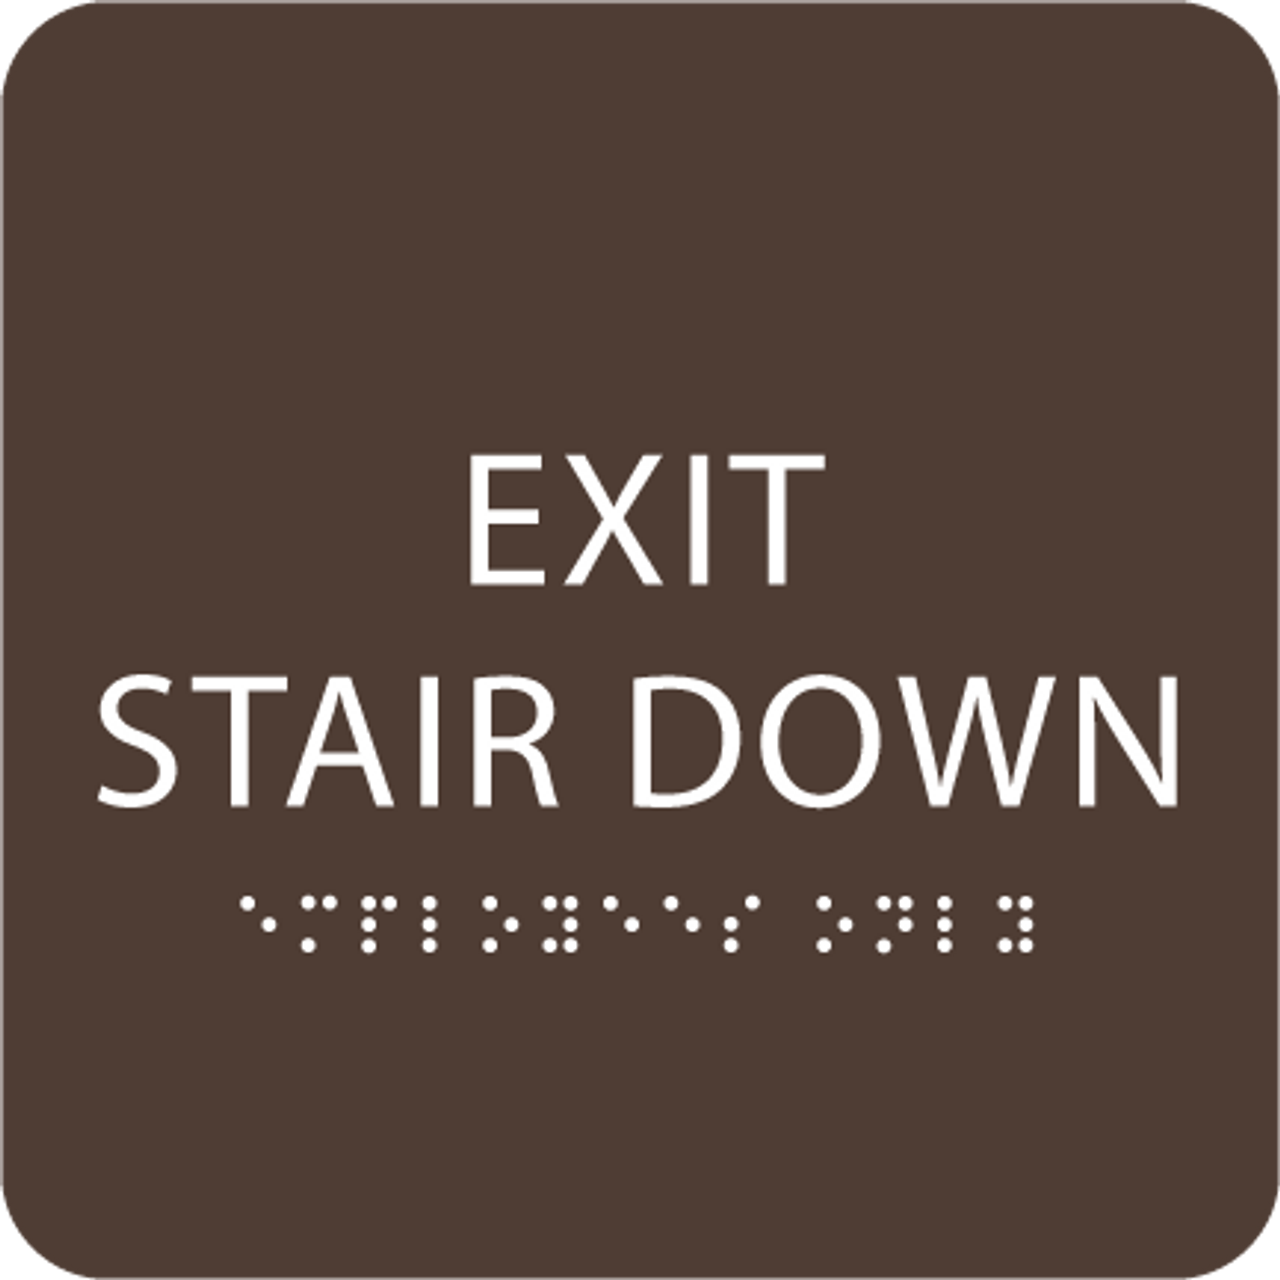 Dark Brown Exit Stair Down ADA Sign